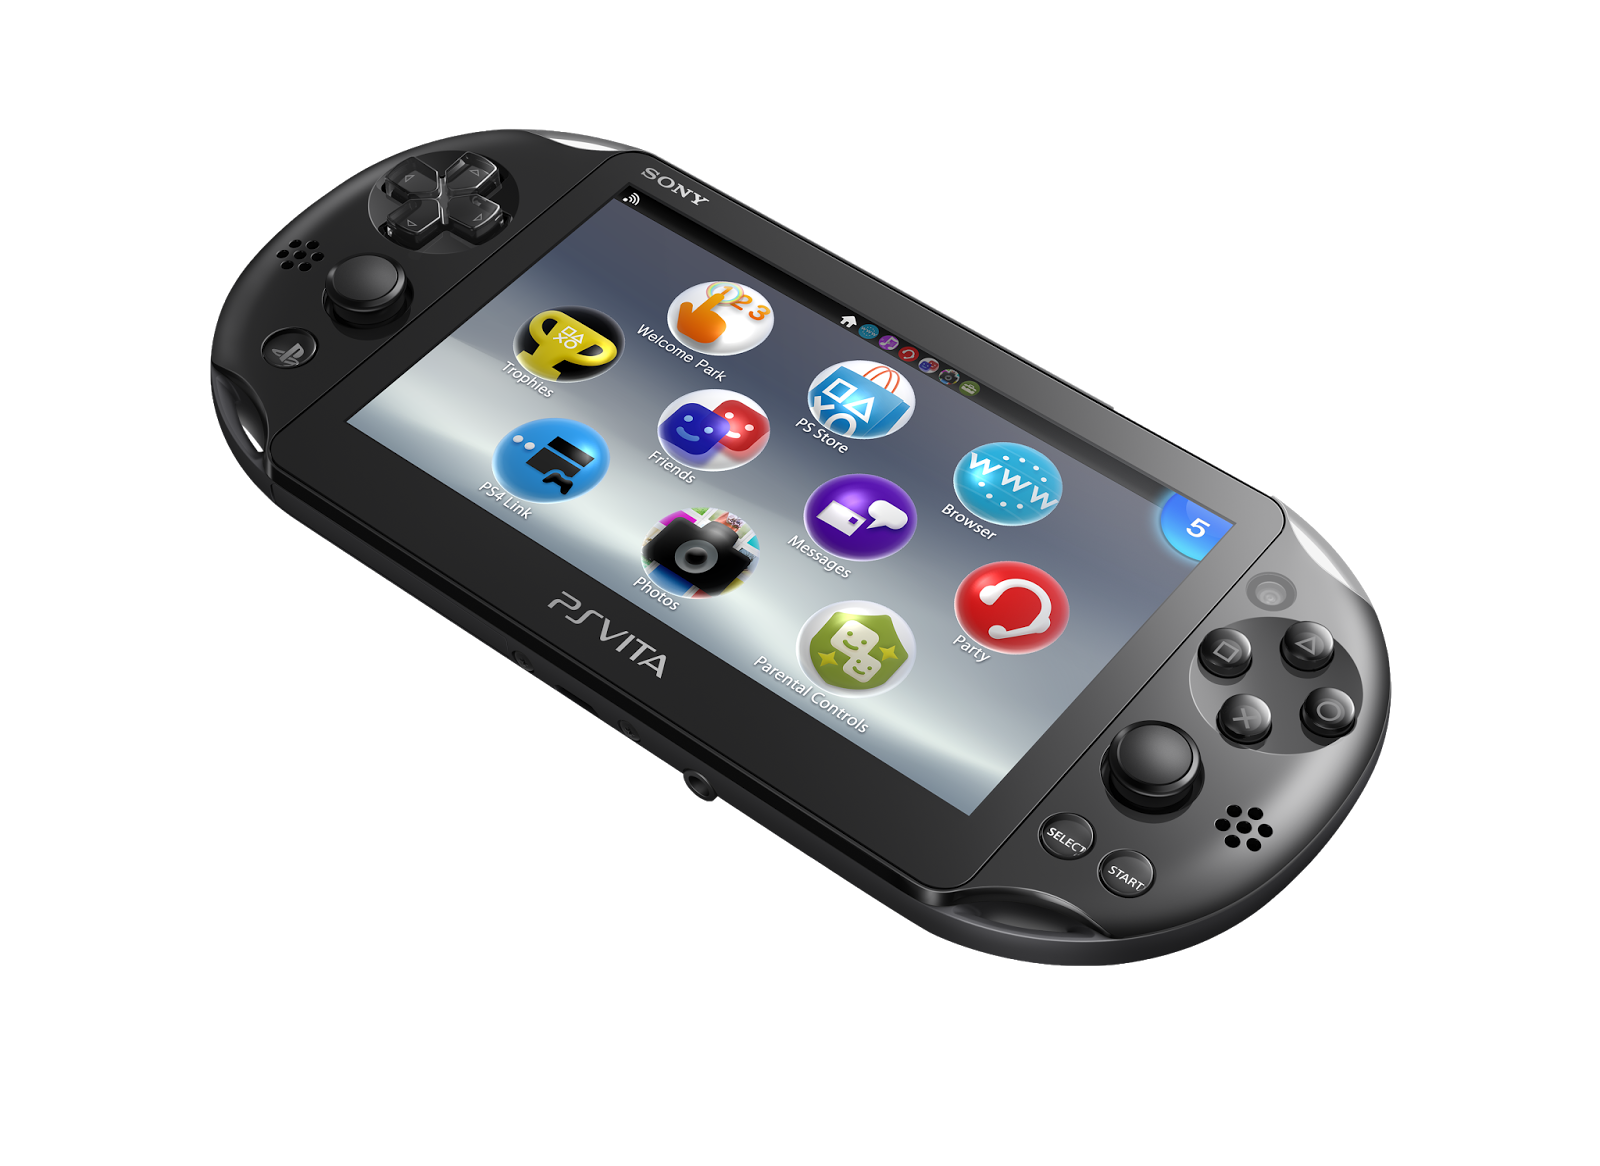 New Slimmer And Lighter PlayStation Vita To Be Introduced In The UK - weknowgamers